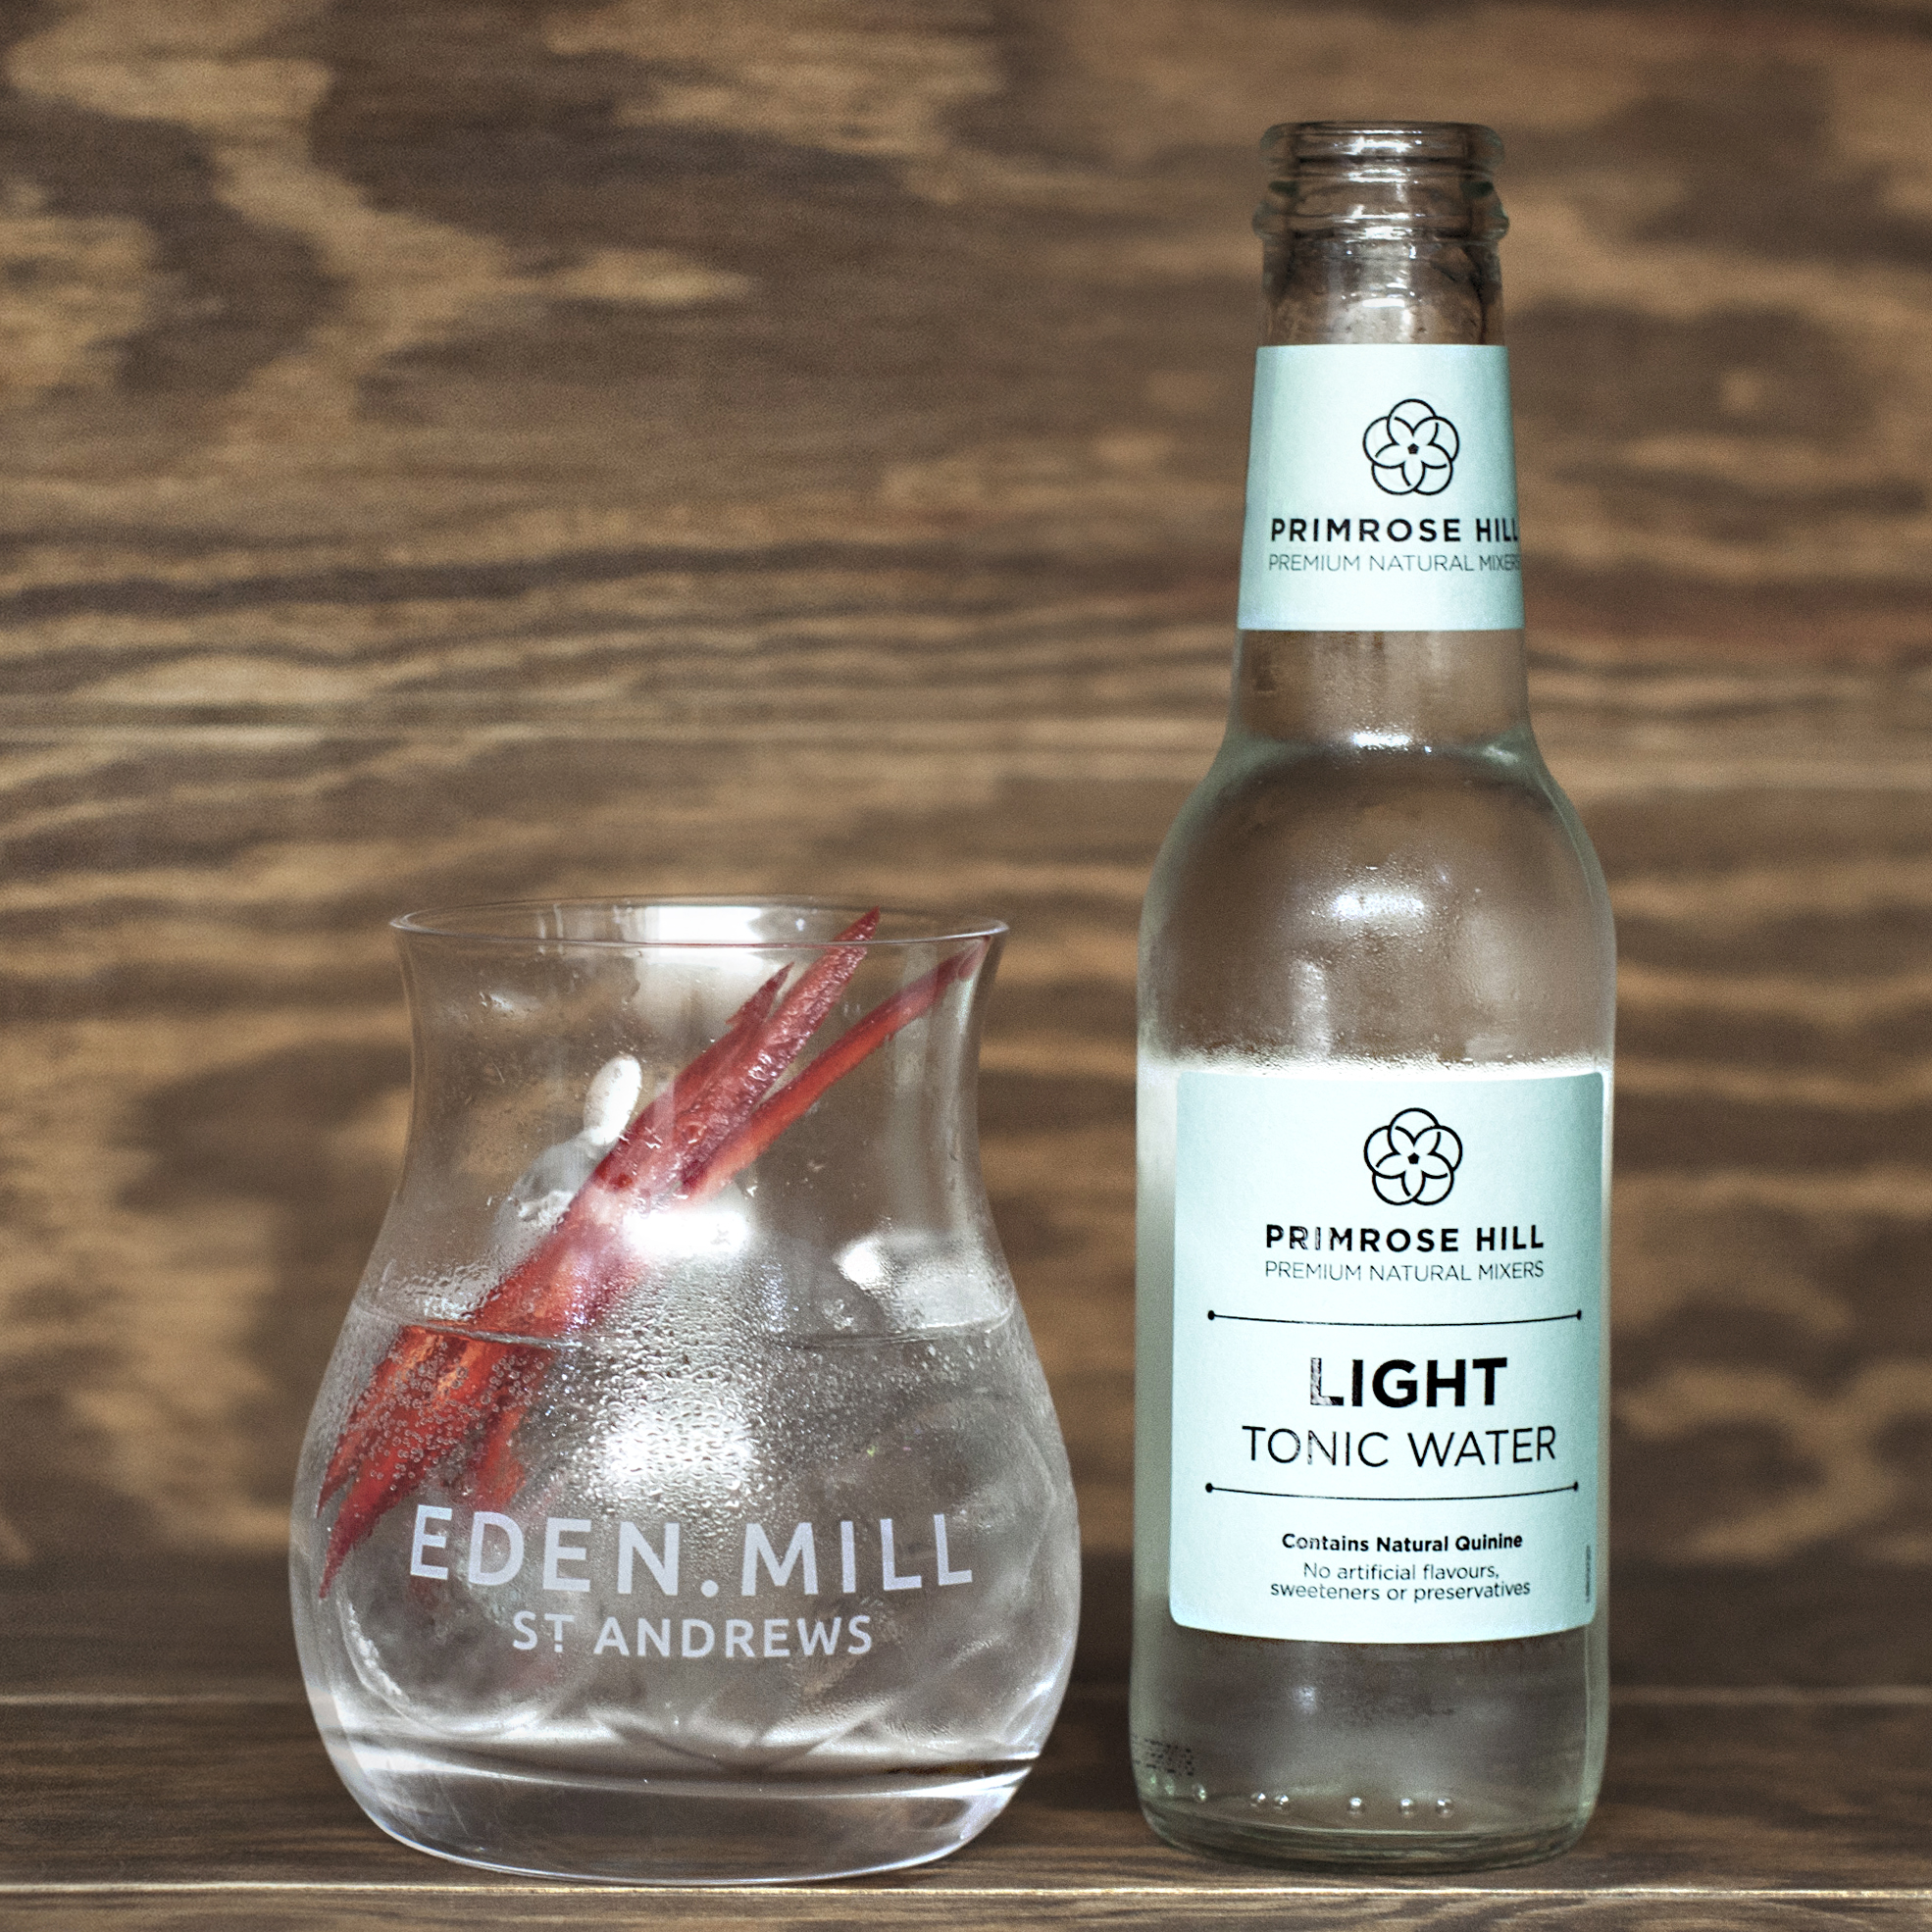 Light Tonic  Water  | Eden Mill Distillery St Andrews